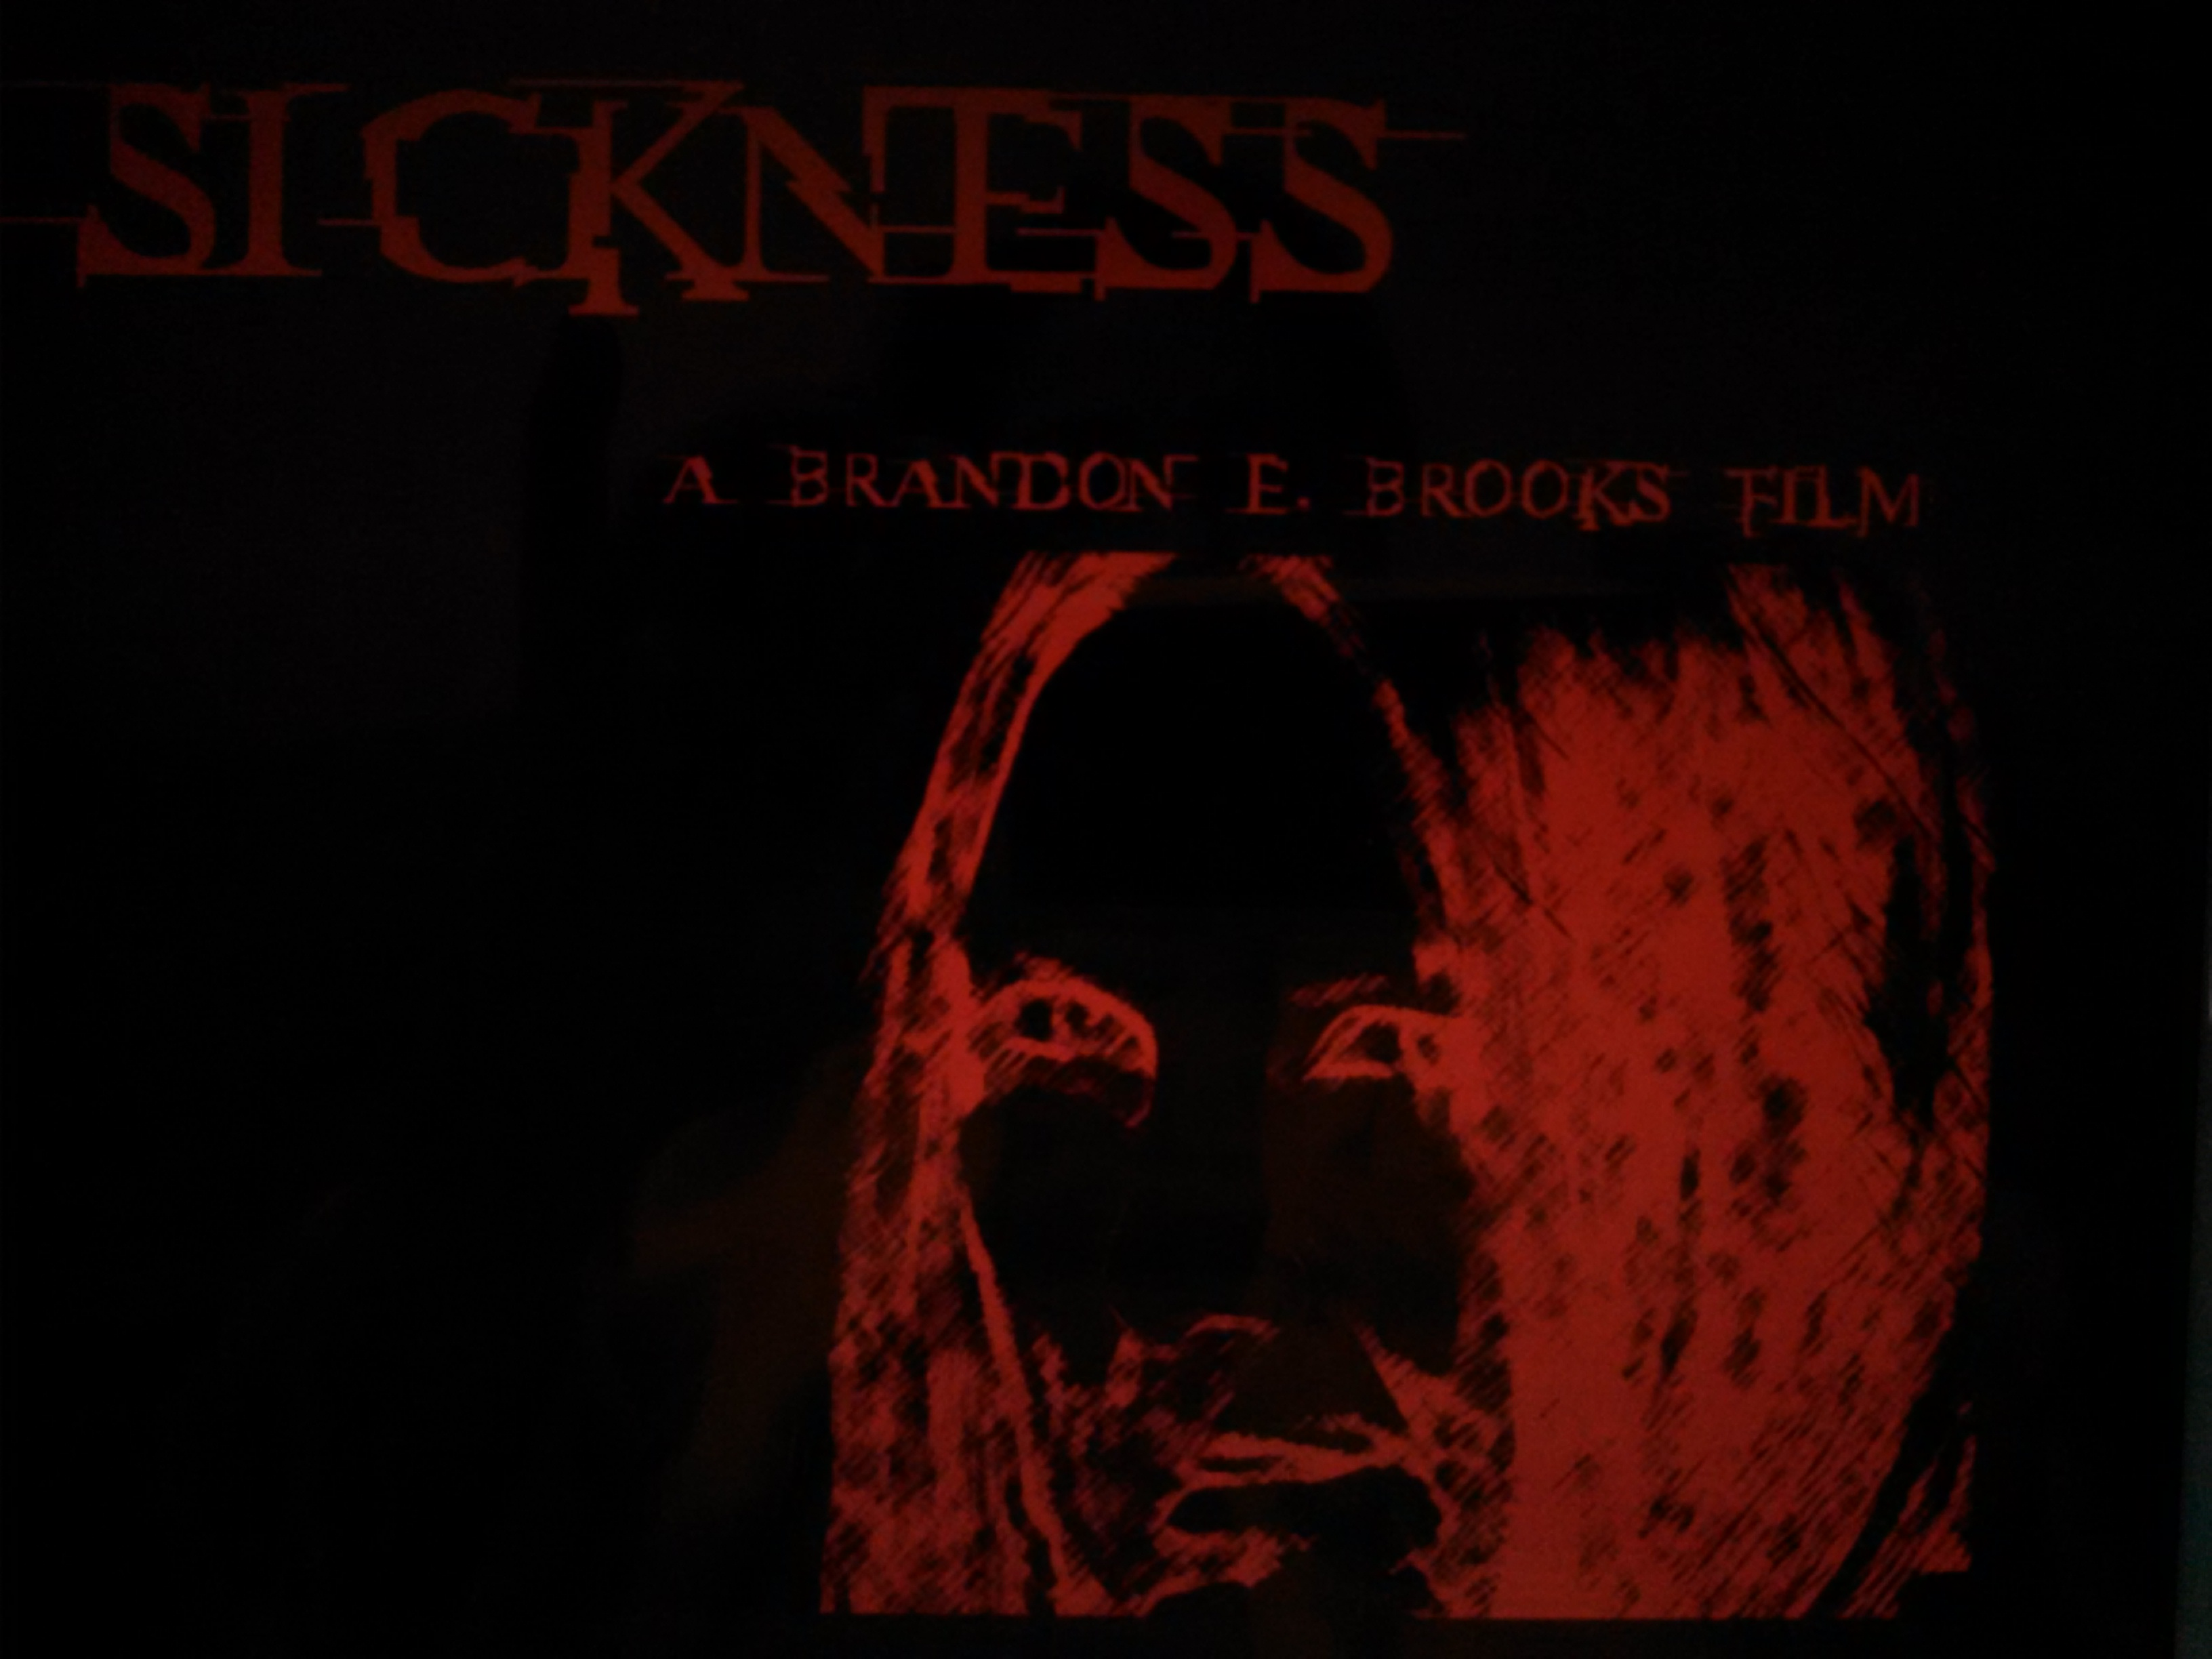 Saturday, Dec 3rd ~ Emerging Artist Screening's @UArts ~ SICKNESS & A MAN POSSESSED.